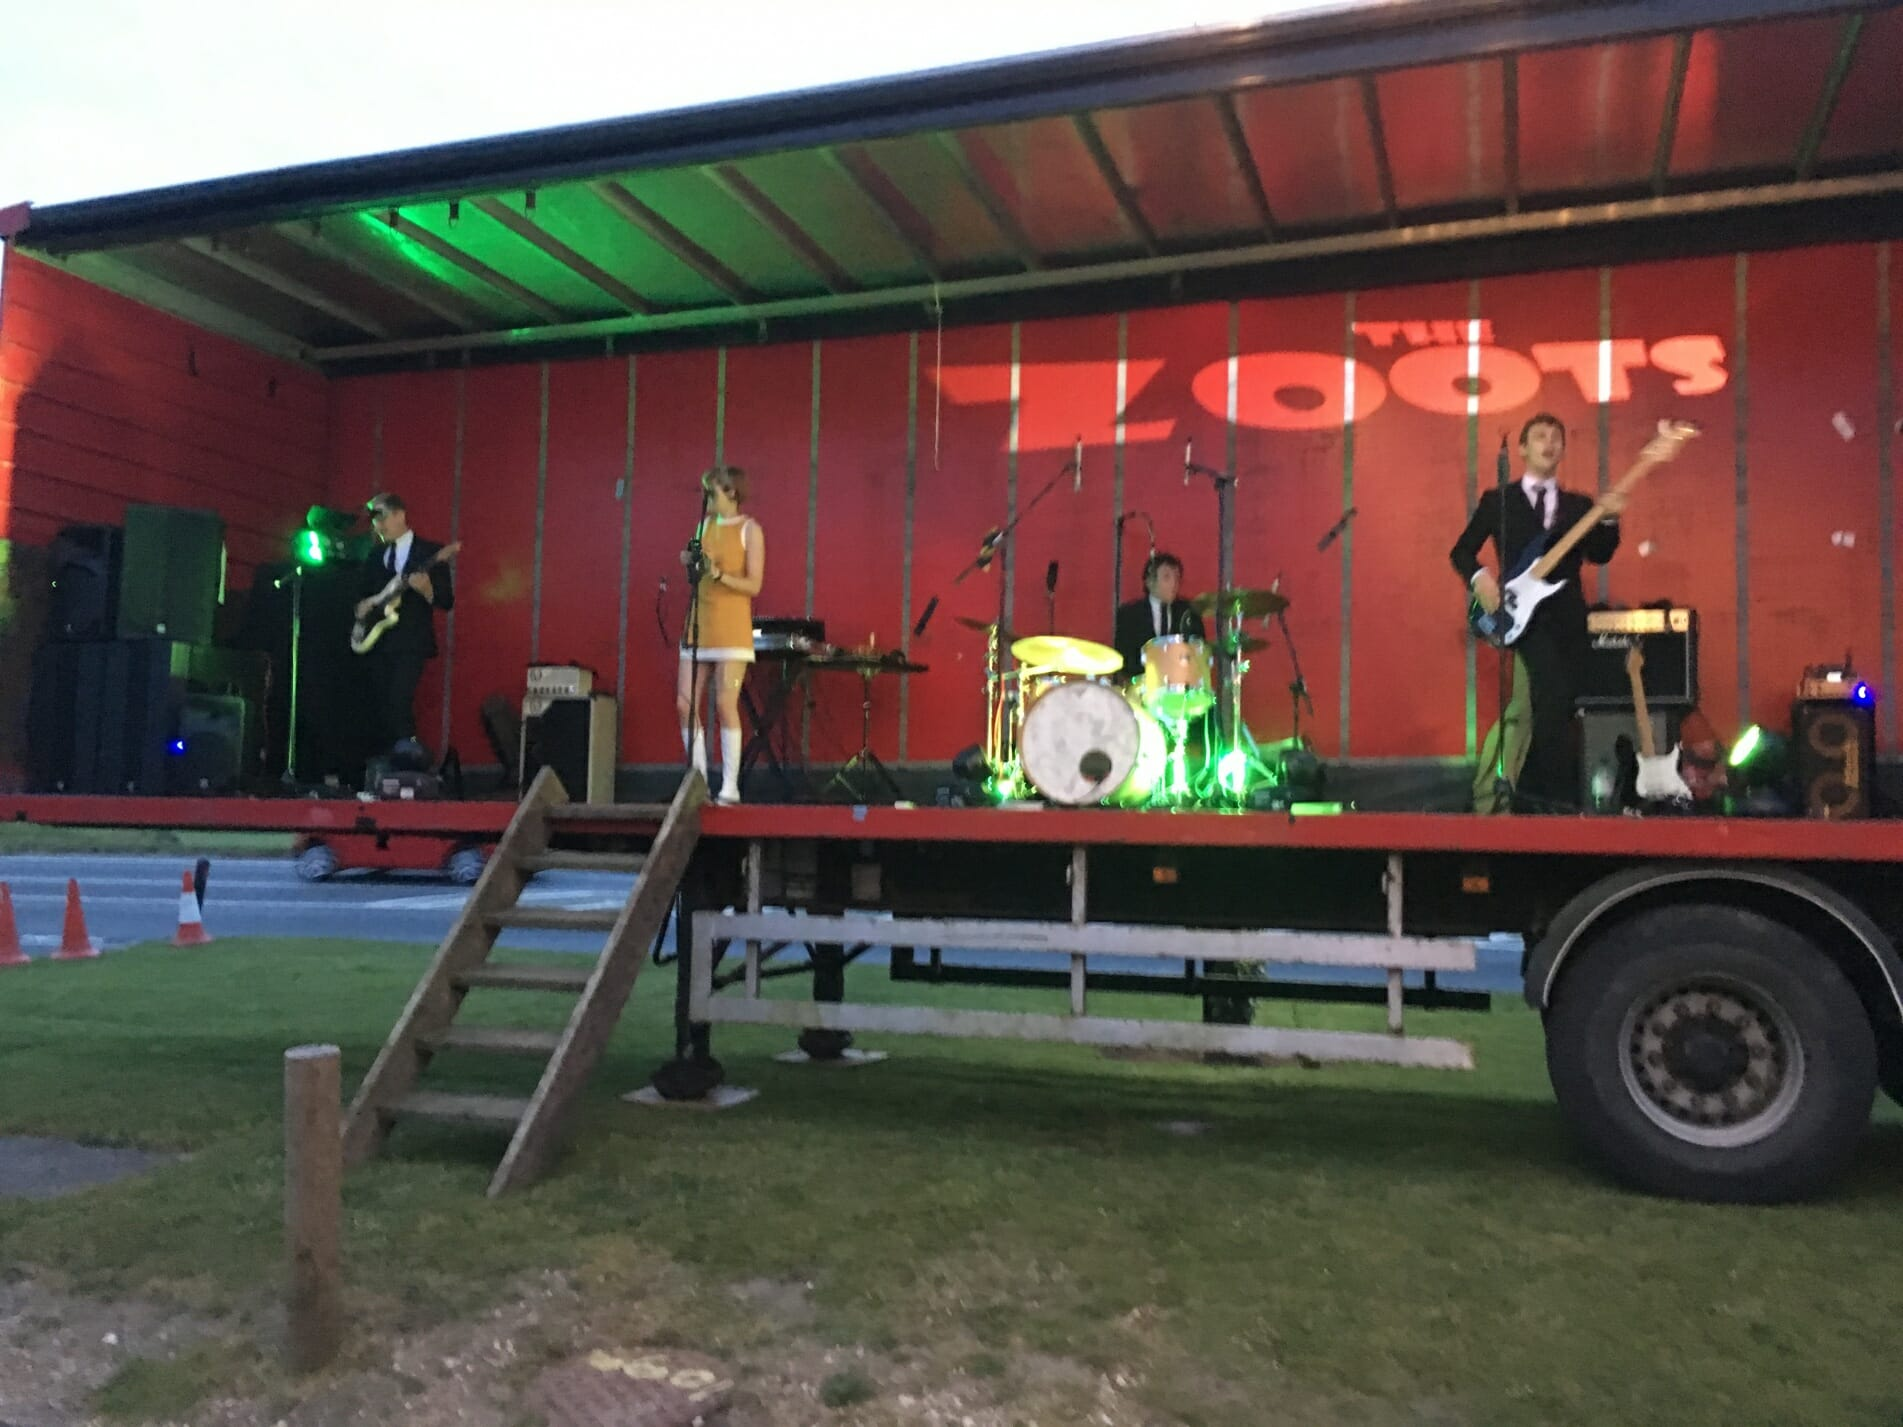 The Zoots, Zoots band, Frog and Wicket, 60s band, Sixties band, Band at Frog and Wicket, Annual Cricket Day Frog and Wicket